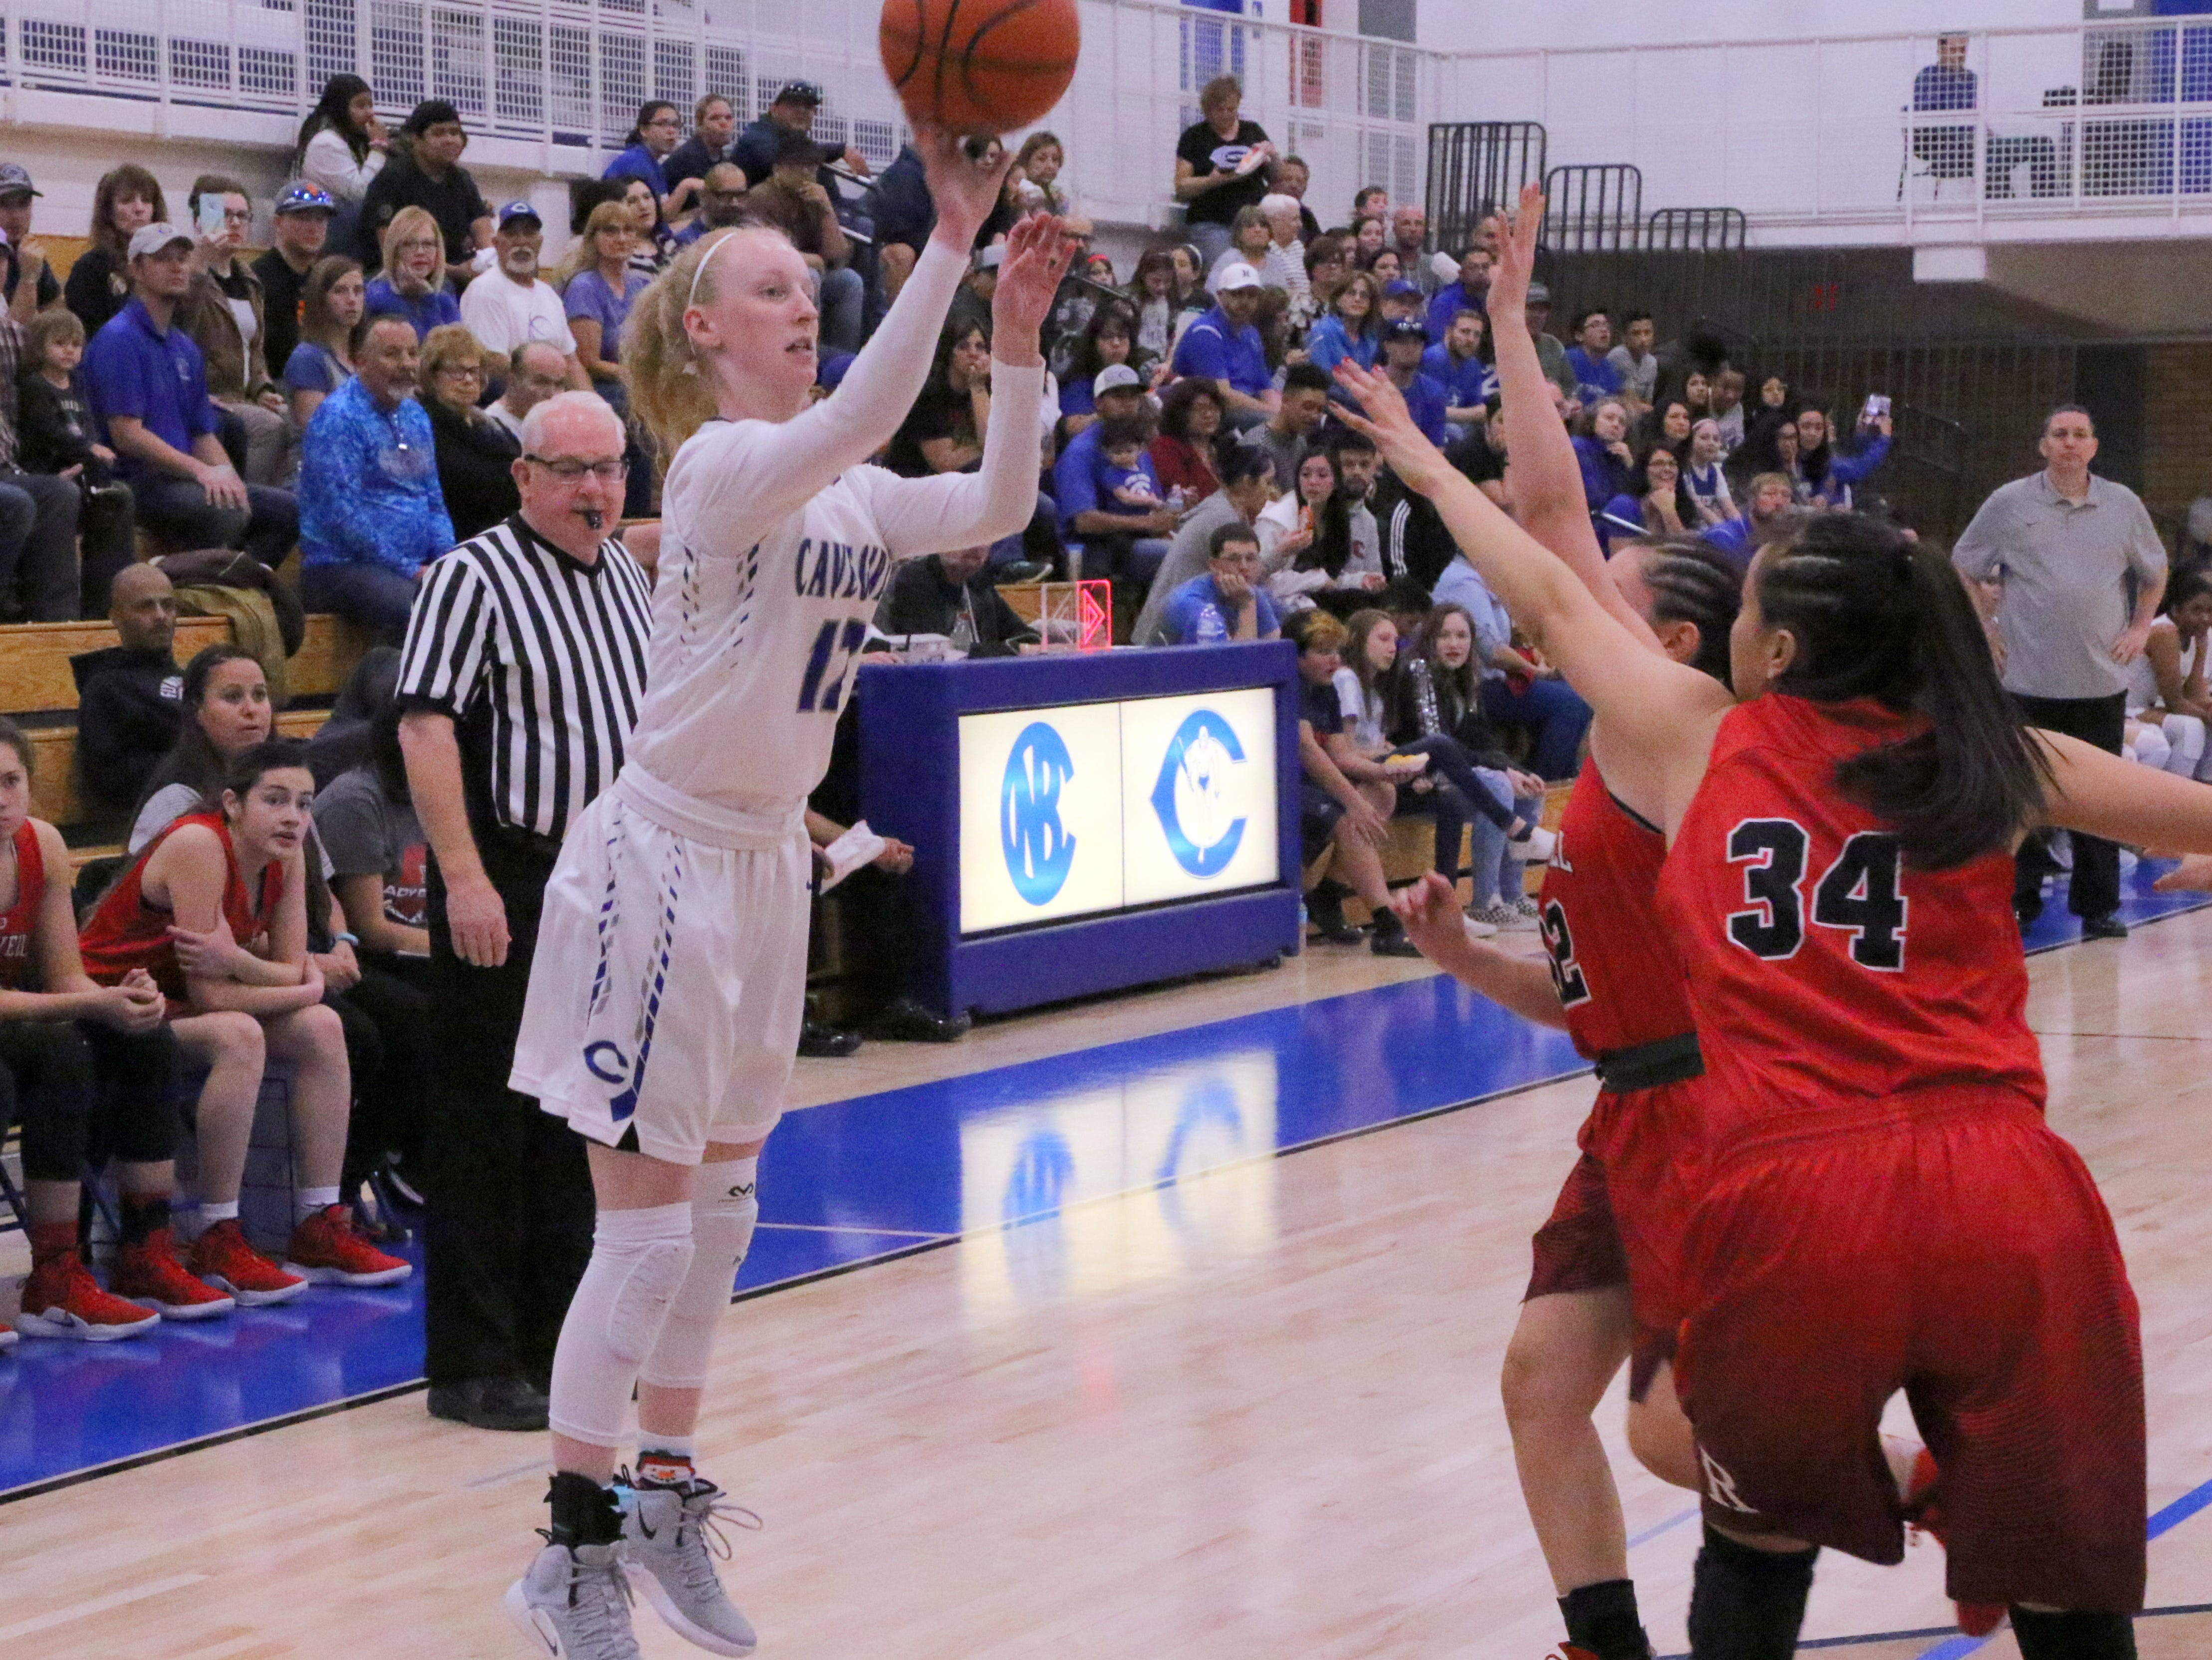 Carsyn Boswell shoots a 3-pointer during Friday's game.